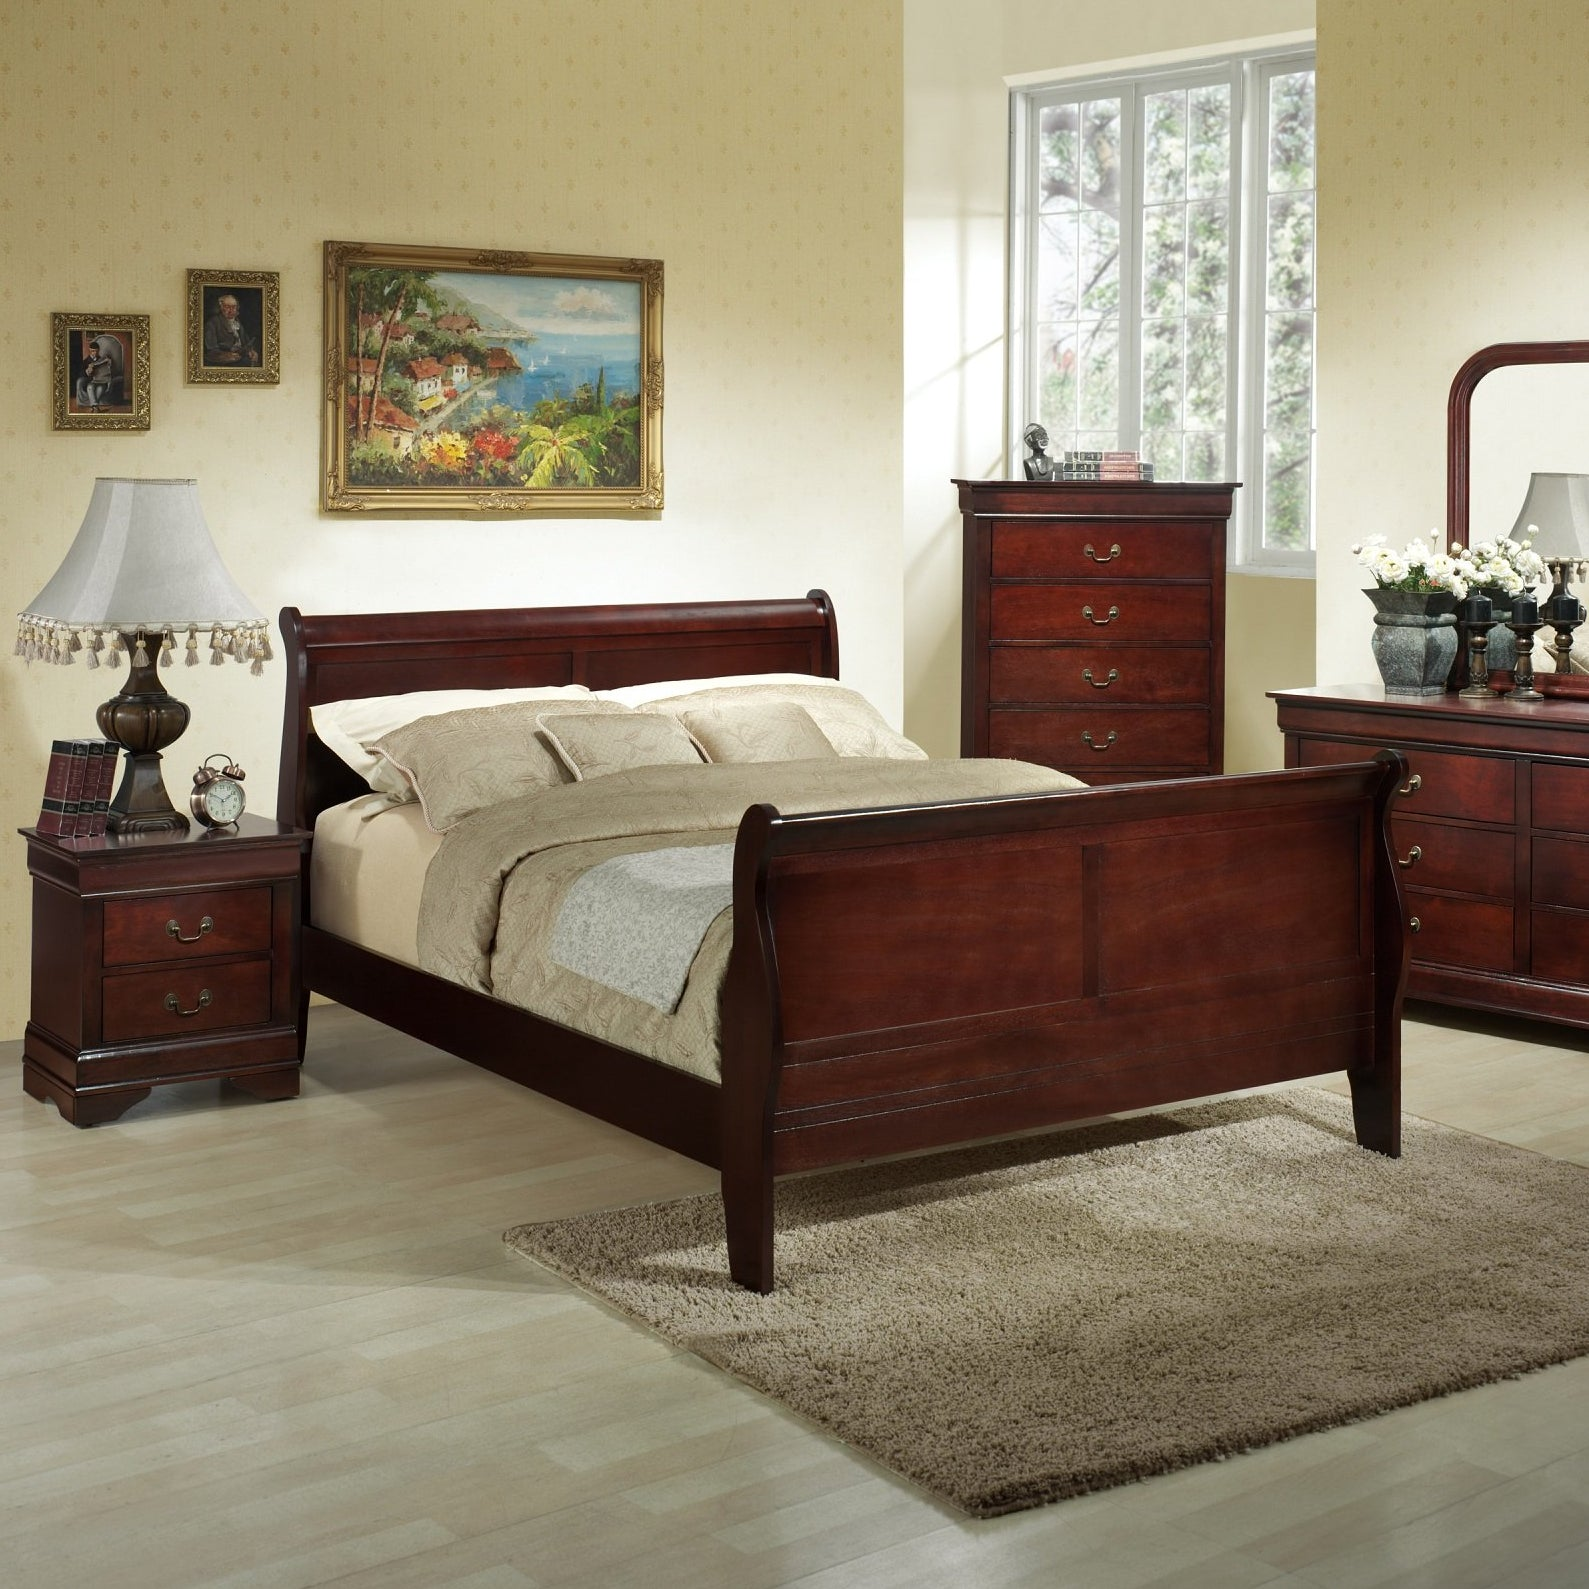 Lorraine Cherry - Lifestyle Furniture